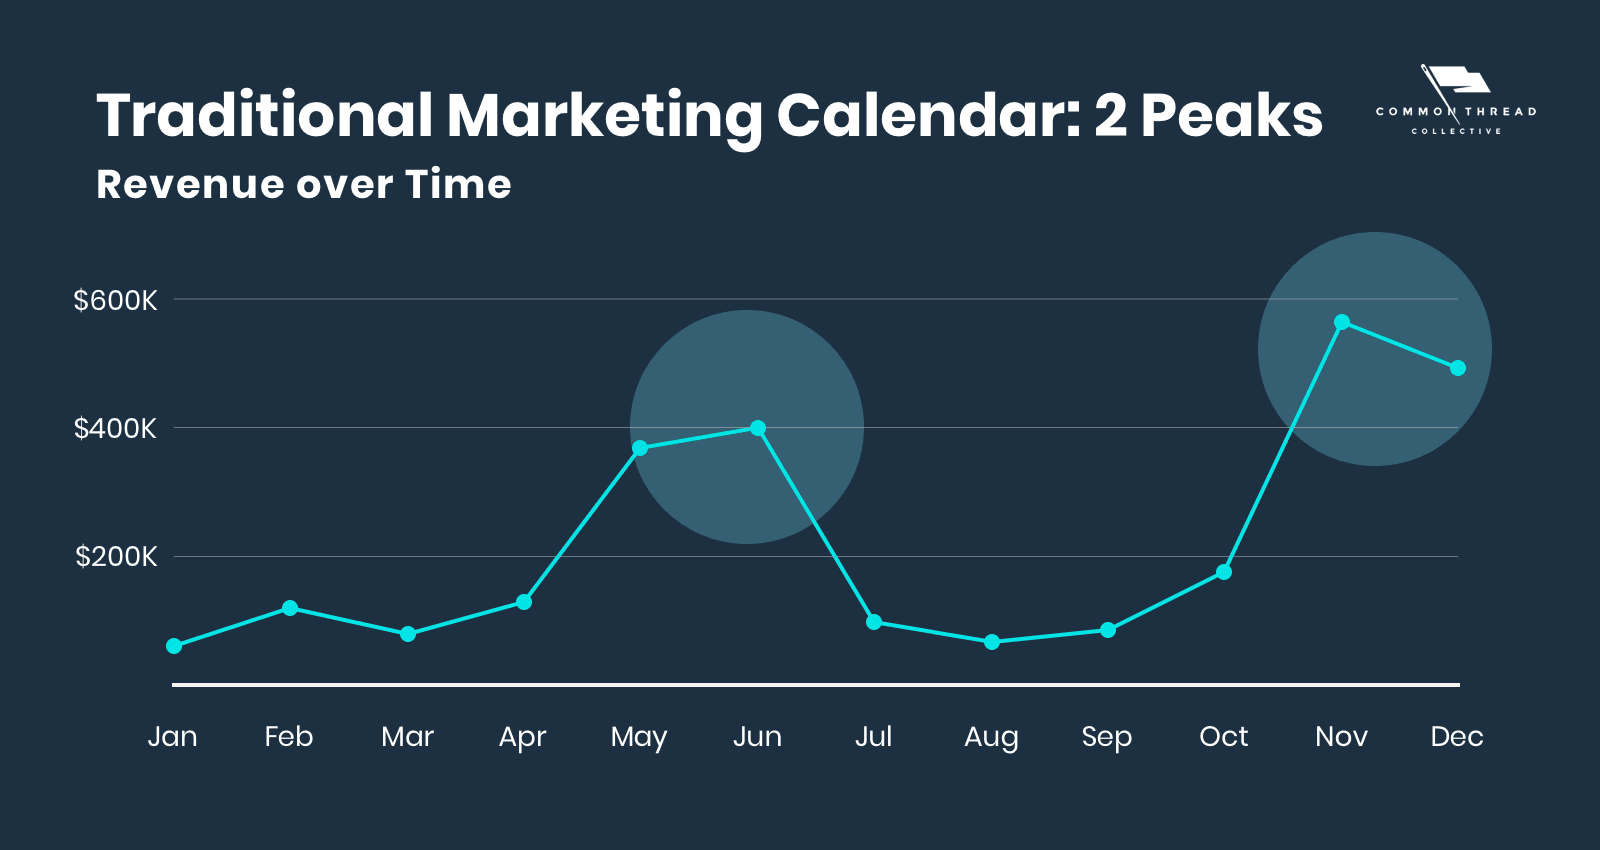 the traditional marketing calendar for most ecommerce businesses include two peaks